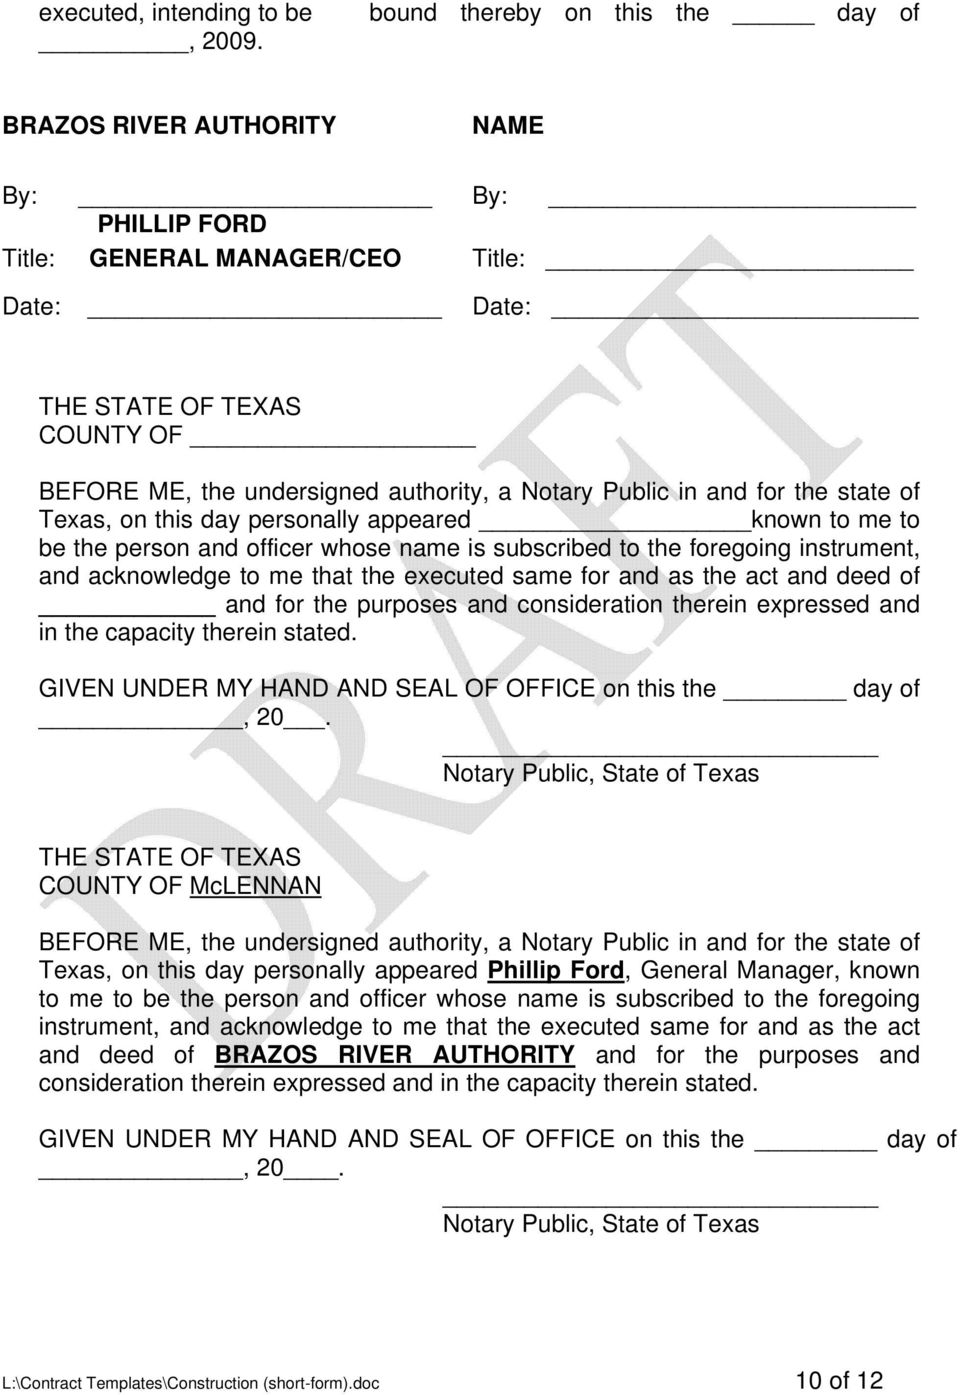 Notary Public in and for the state of Texas, on this day personally appeared known to me to be the person and officer whose name is subscribed to the foregoing instrument, and acknowledge to me that